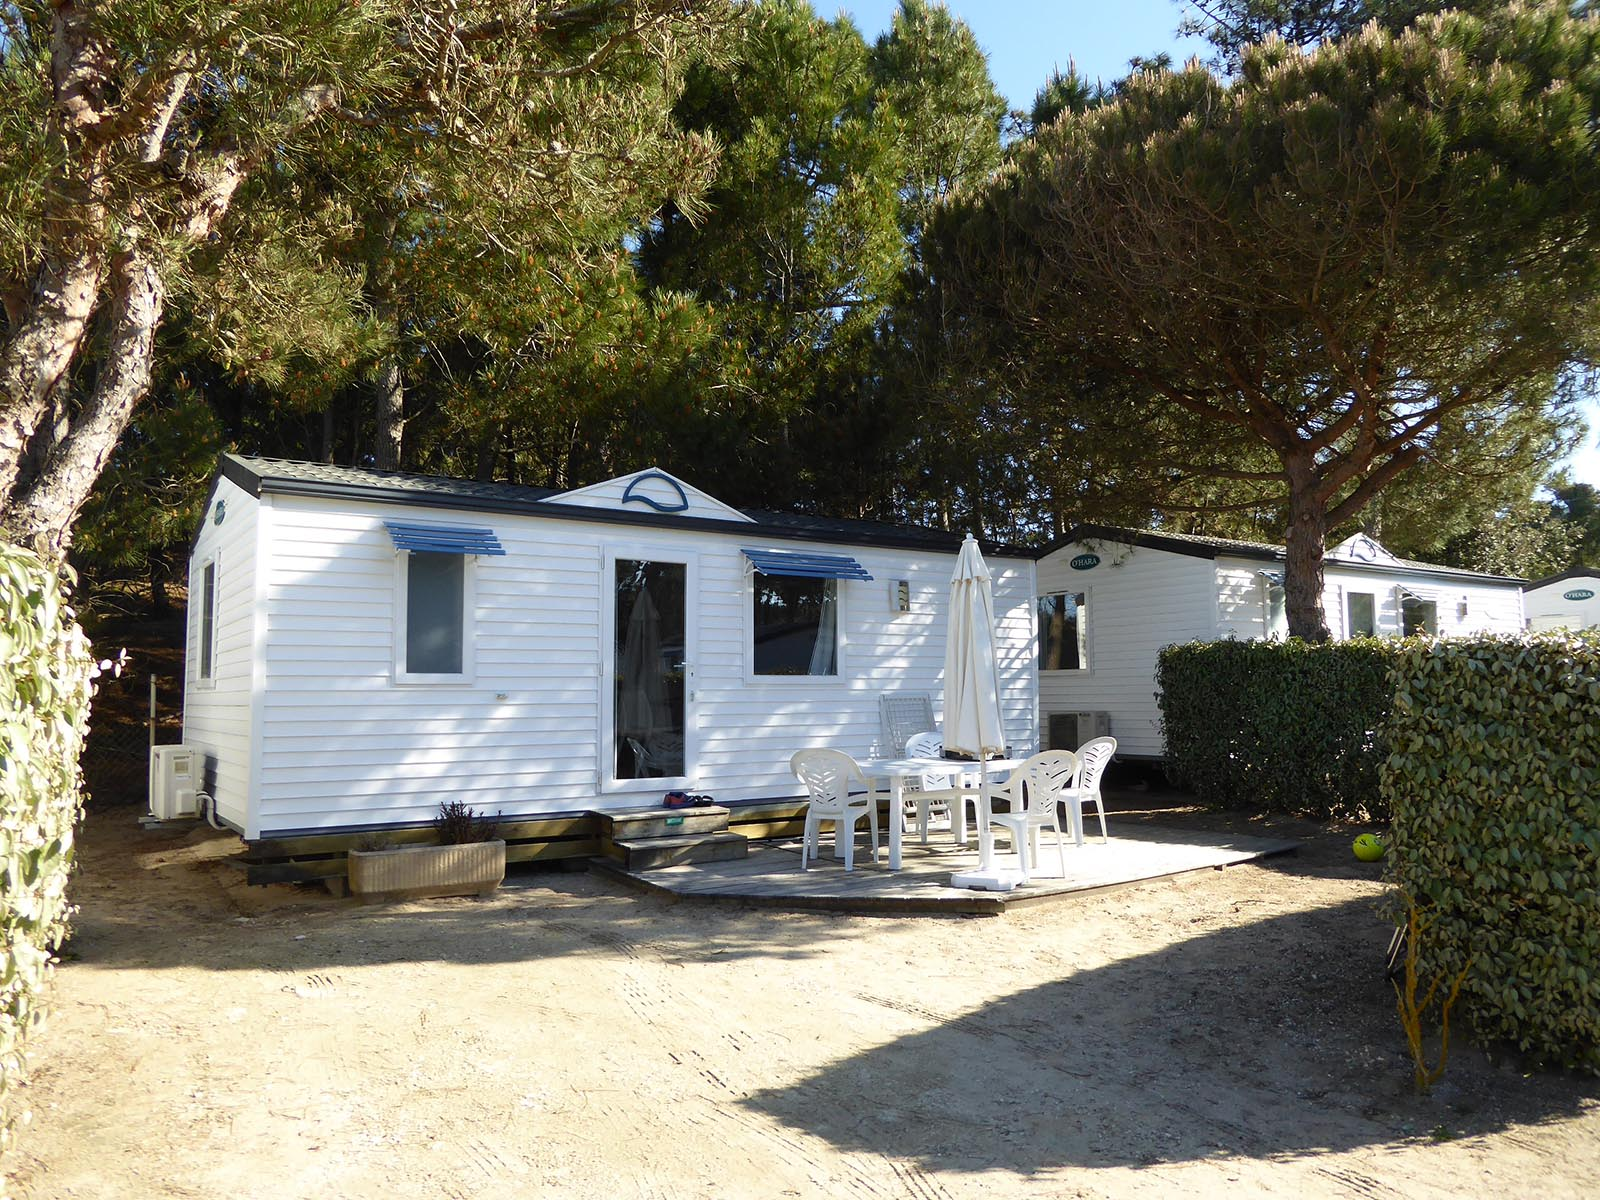 Camping Bois Soleil Cottage Mer 2 chambres